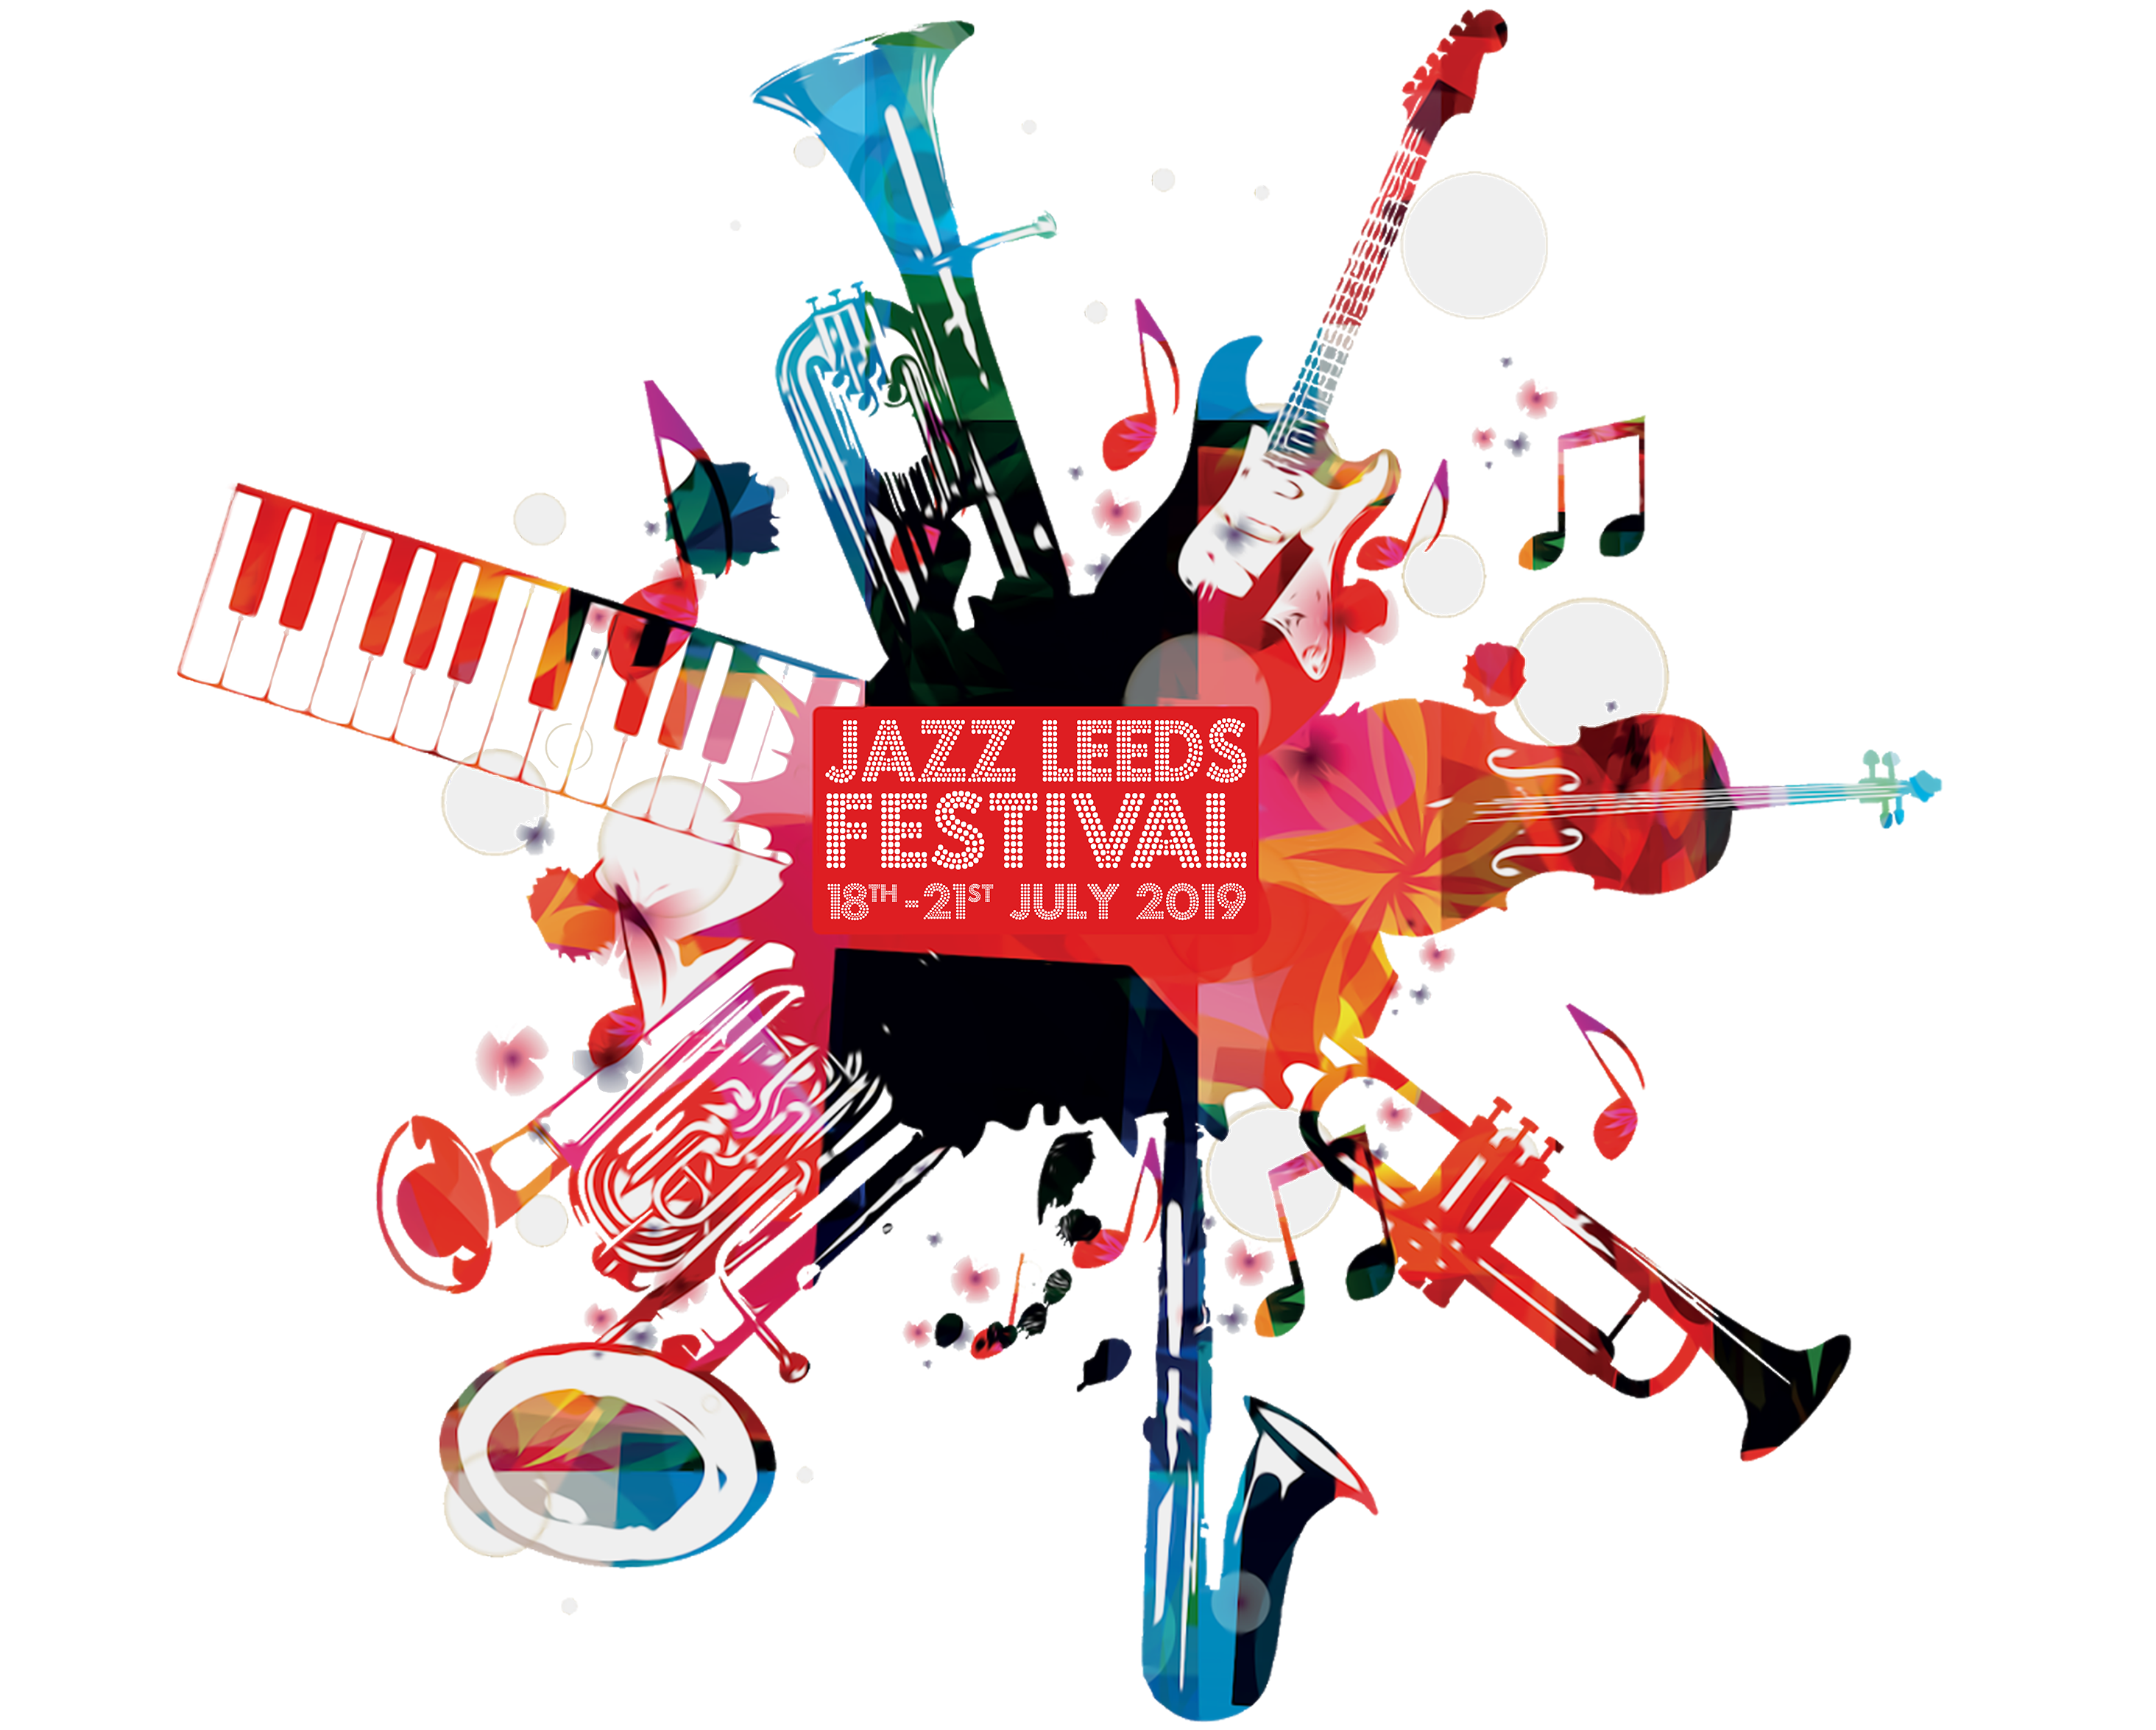 Main Jazz Festival Concerts 18- 21 July at a glance